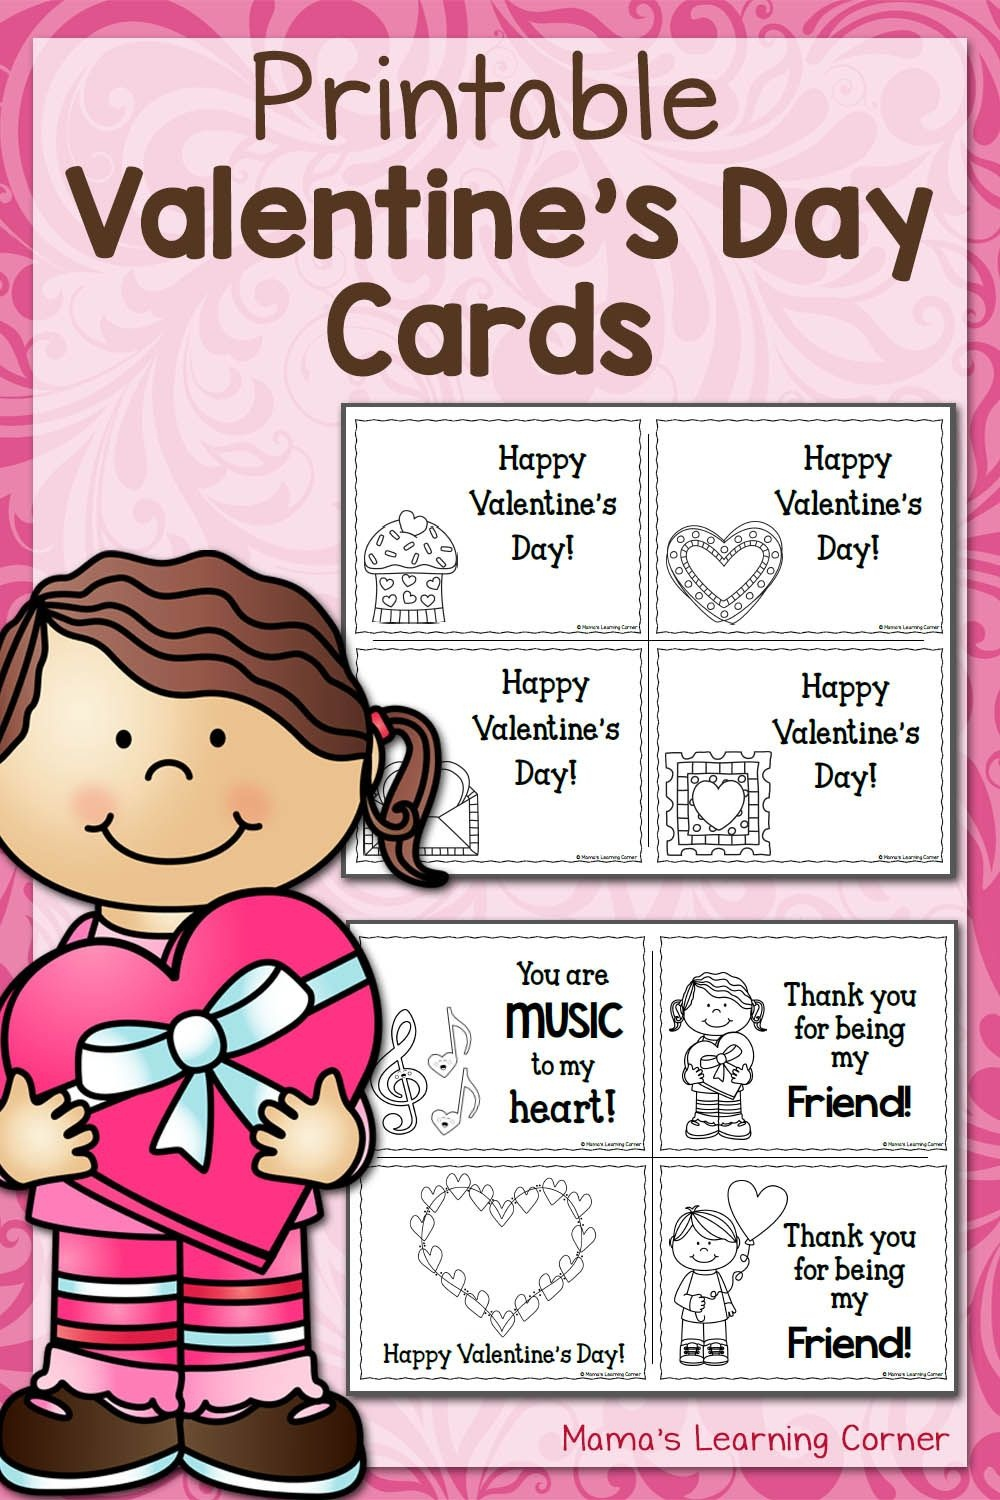 Printable Valentine's Day Cards | Best Of Mama's Learning Corner - Free Printable Heart Designs